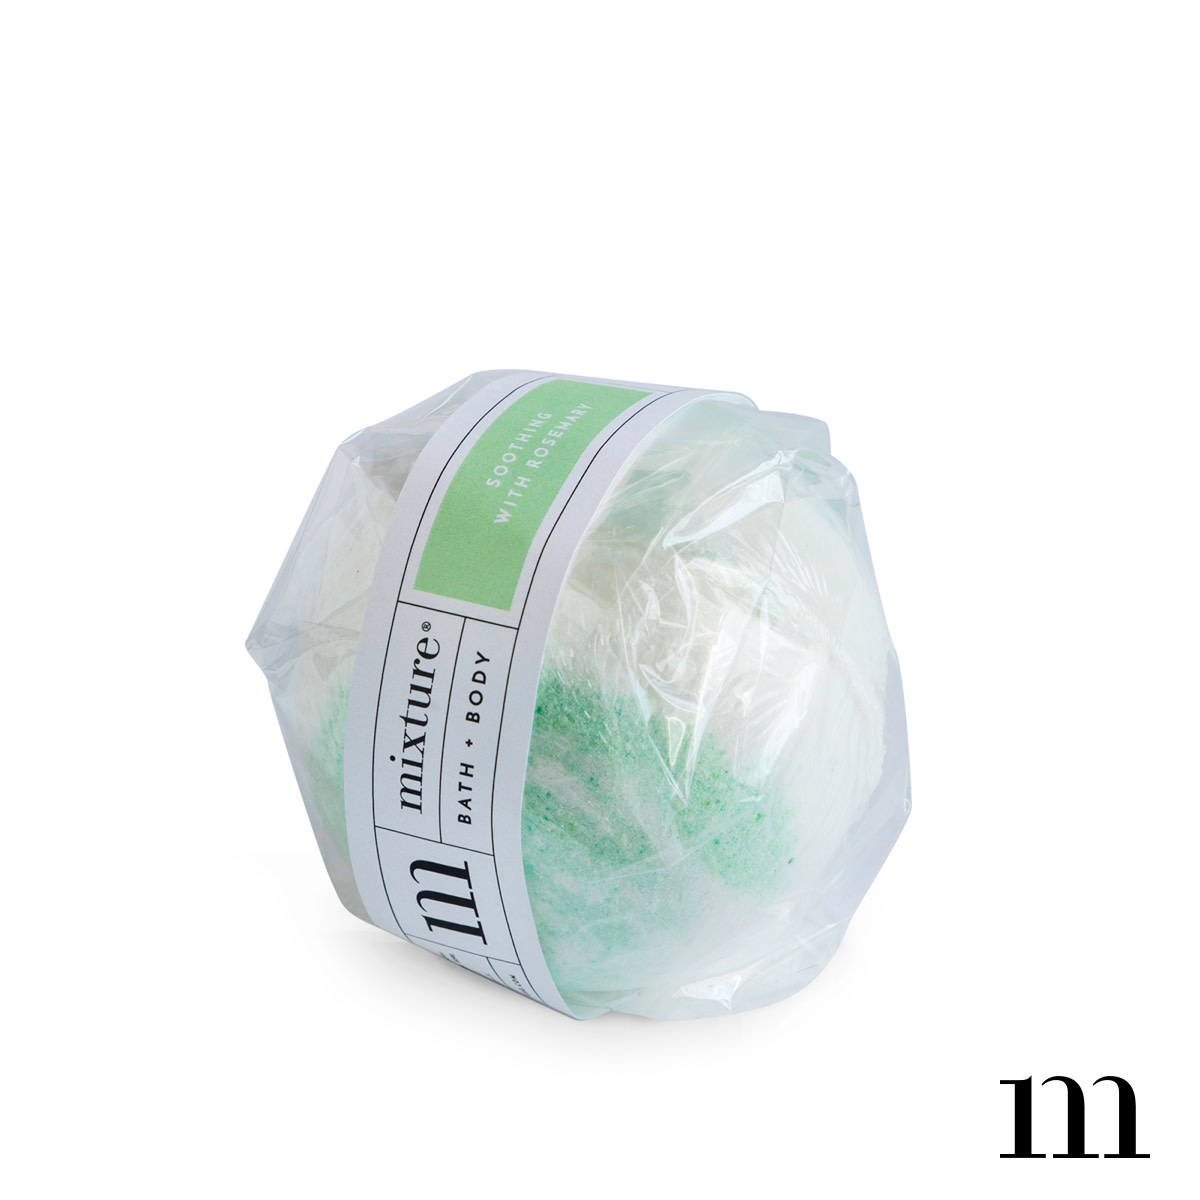 MIXTURE AROMATHERAPY BATH BOMB-SOOTHING WITH ROSEMARY